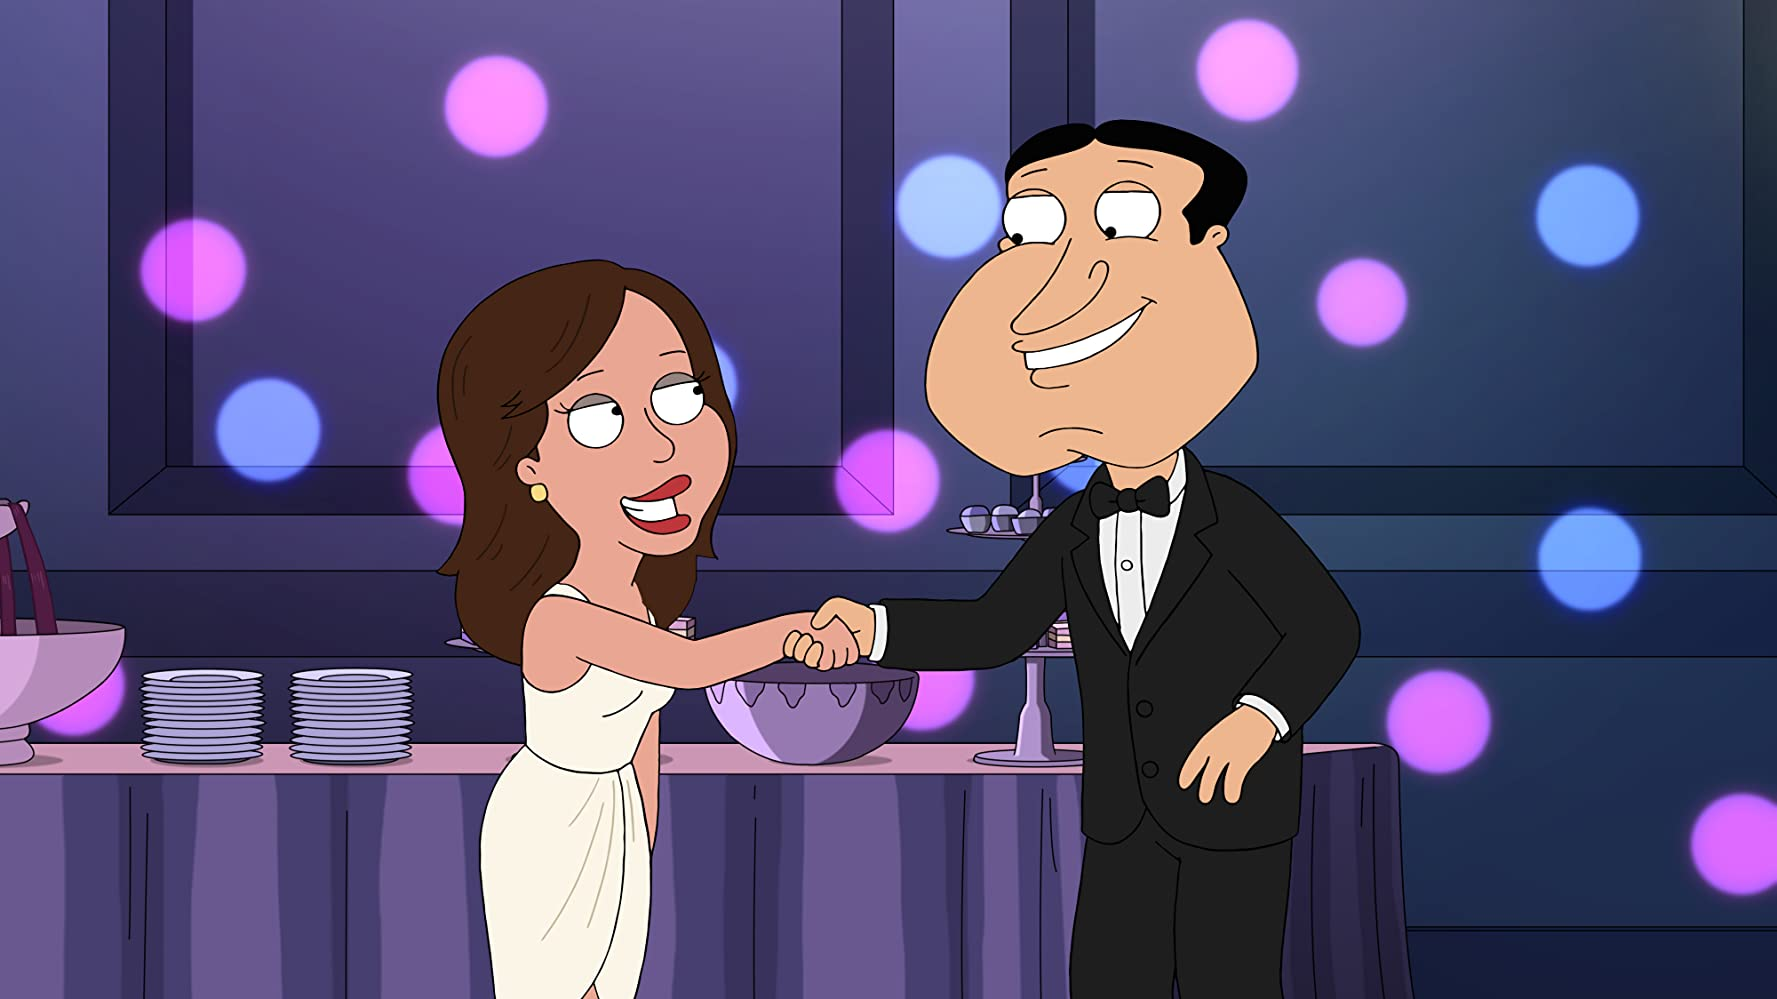 Seth MacFarlane and Mandy Moore in Family Guy (1999)